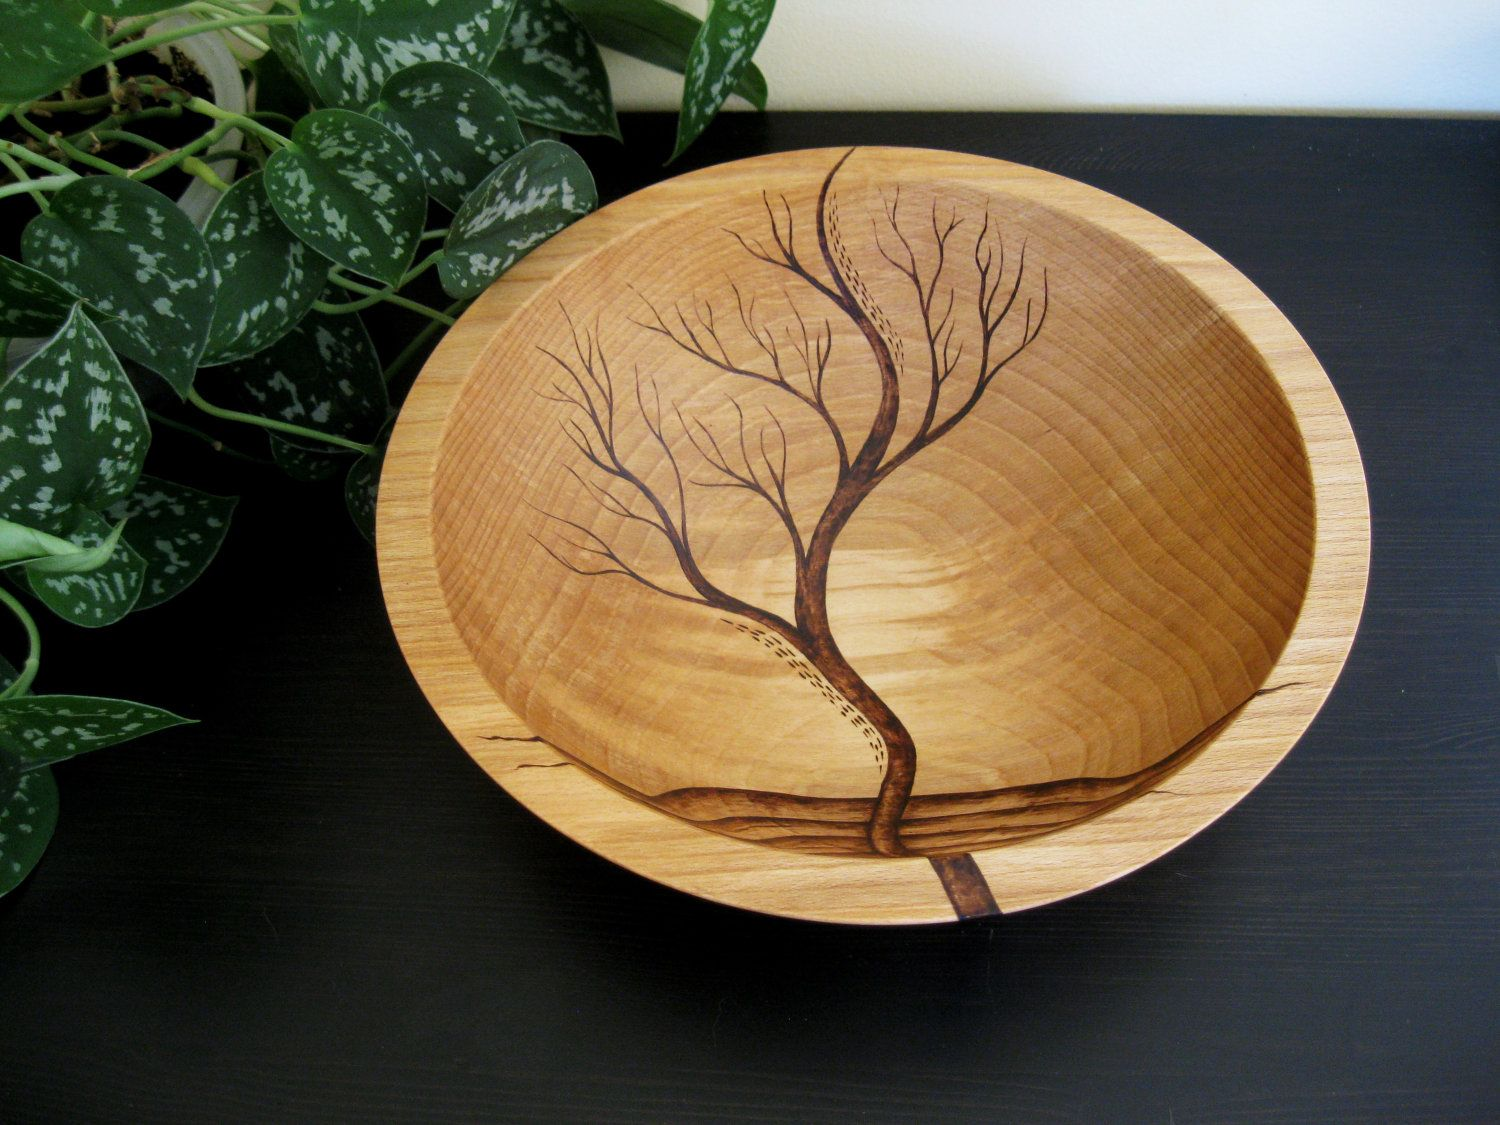 best 25 wooden bowls ideas only on pinterest rustic decorative